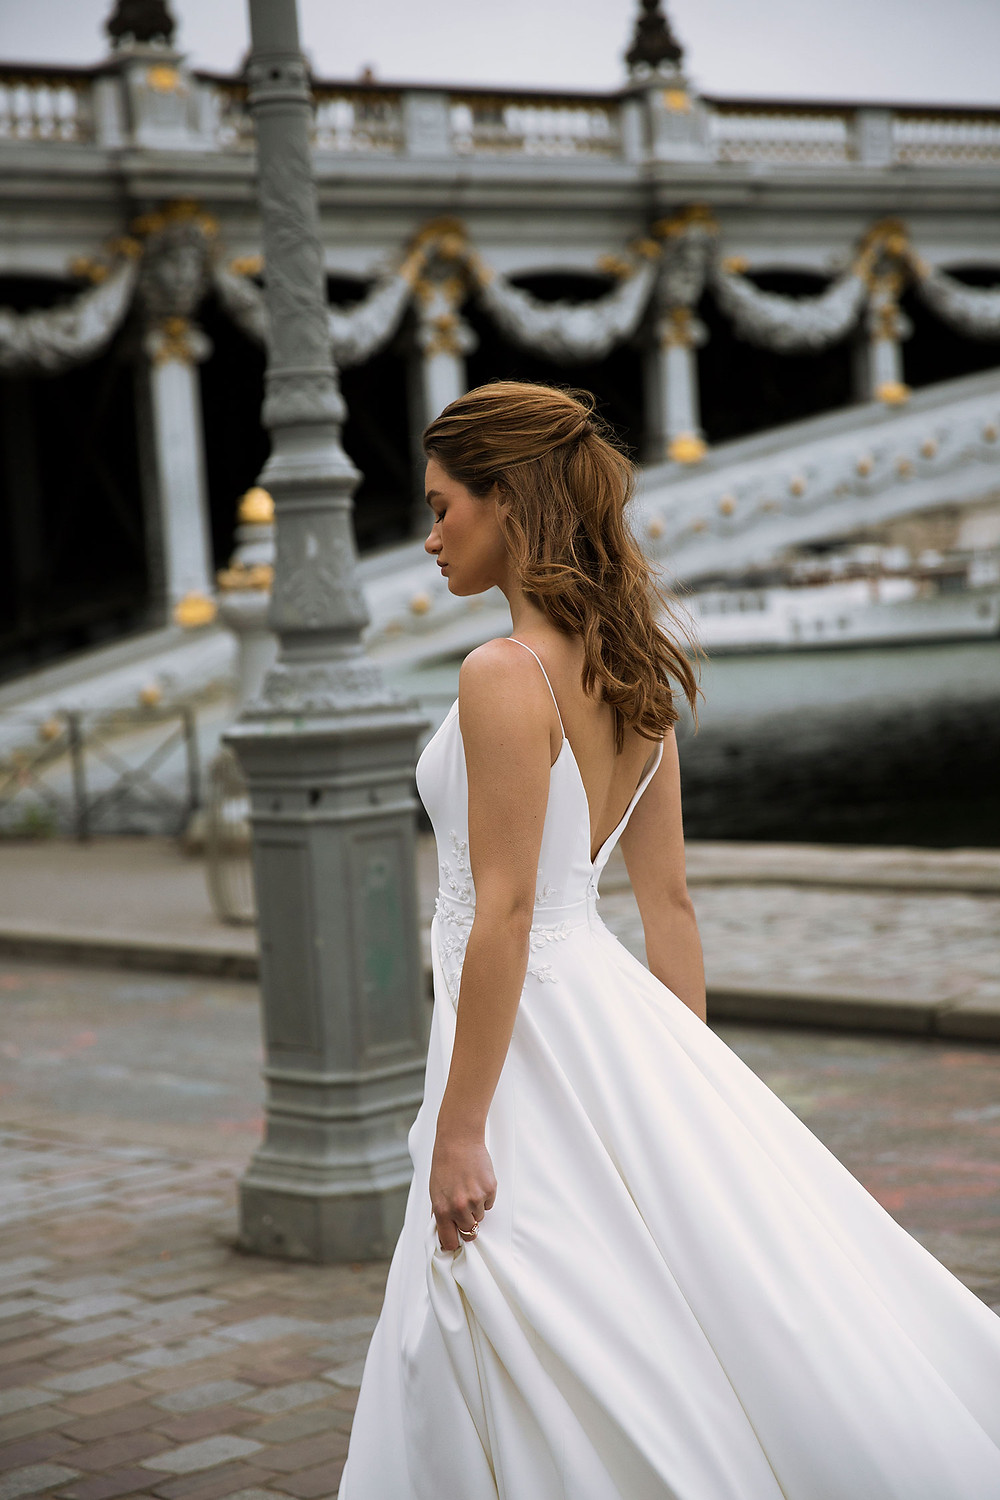 Paris Hair & Makeup Artist Ava Belle Luxury Wedding and Bridal Styling